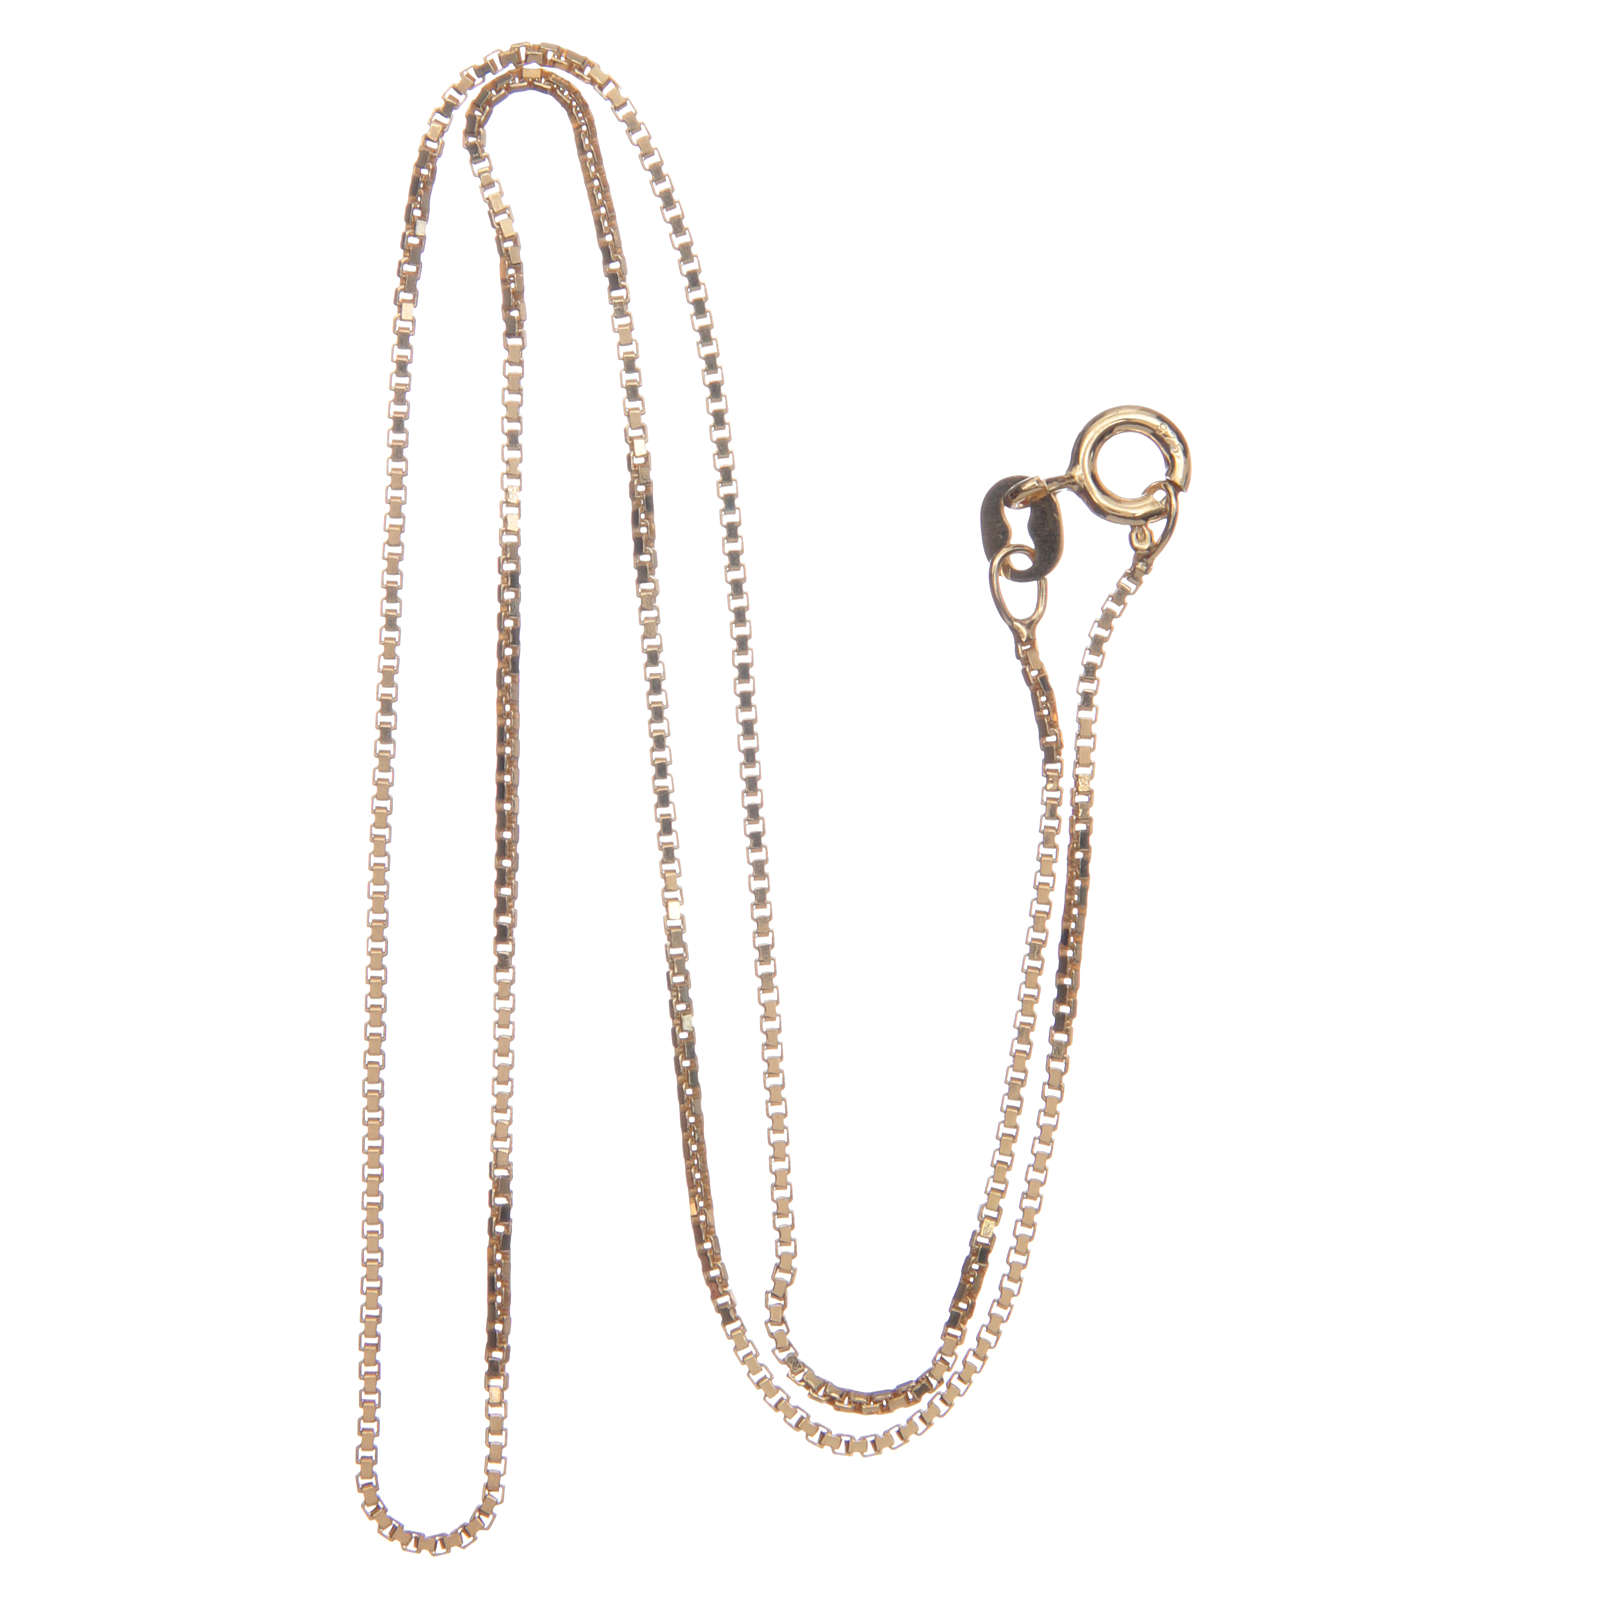 Venetian chain in 925 sterling silver finished in gold, 40 cm length 4